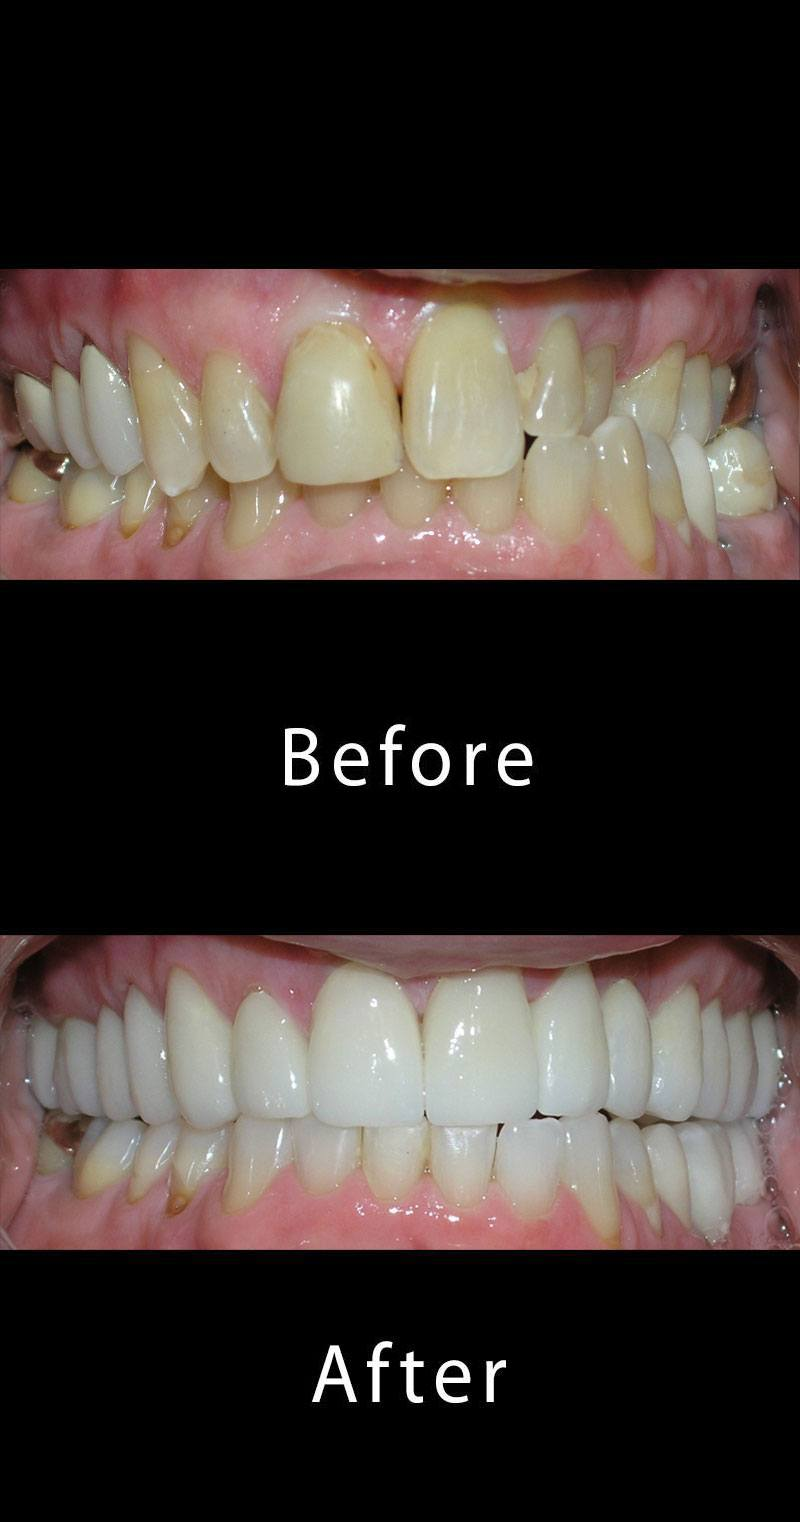 Teeth Cleaning Before After Image